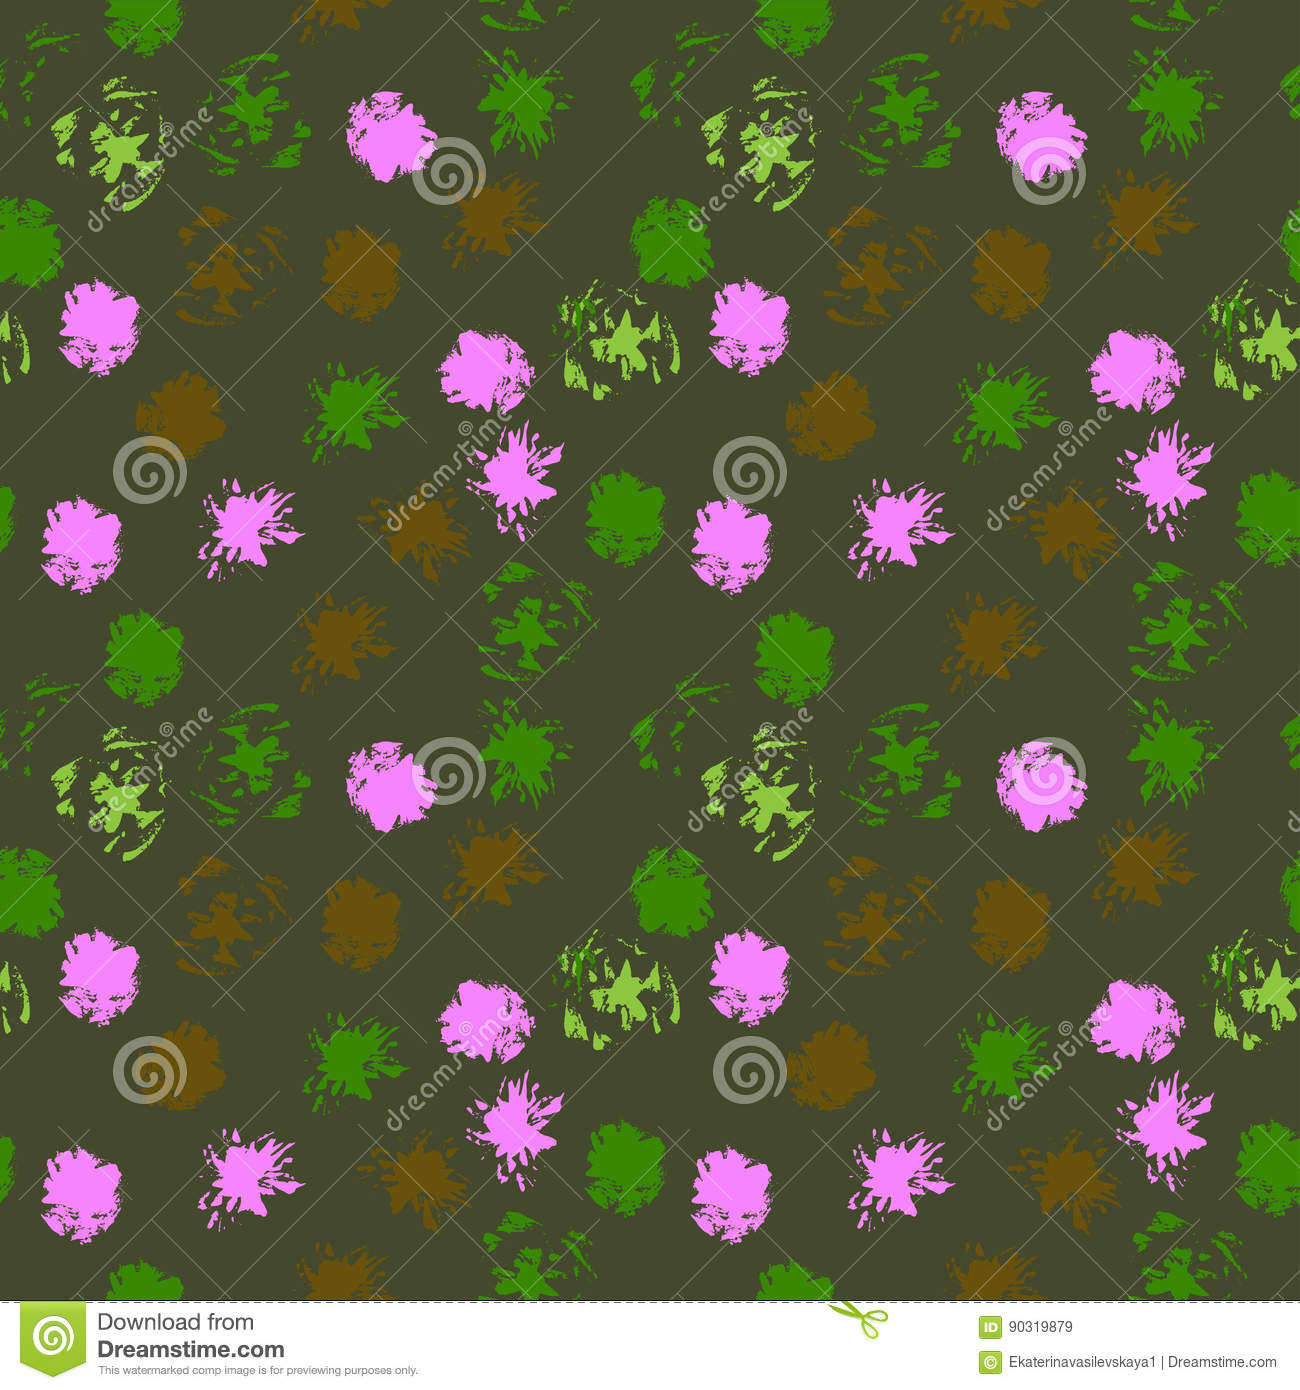 Decorative Modern Seamless Pattern For Home Decor Vector Background